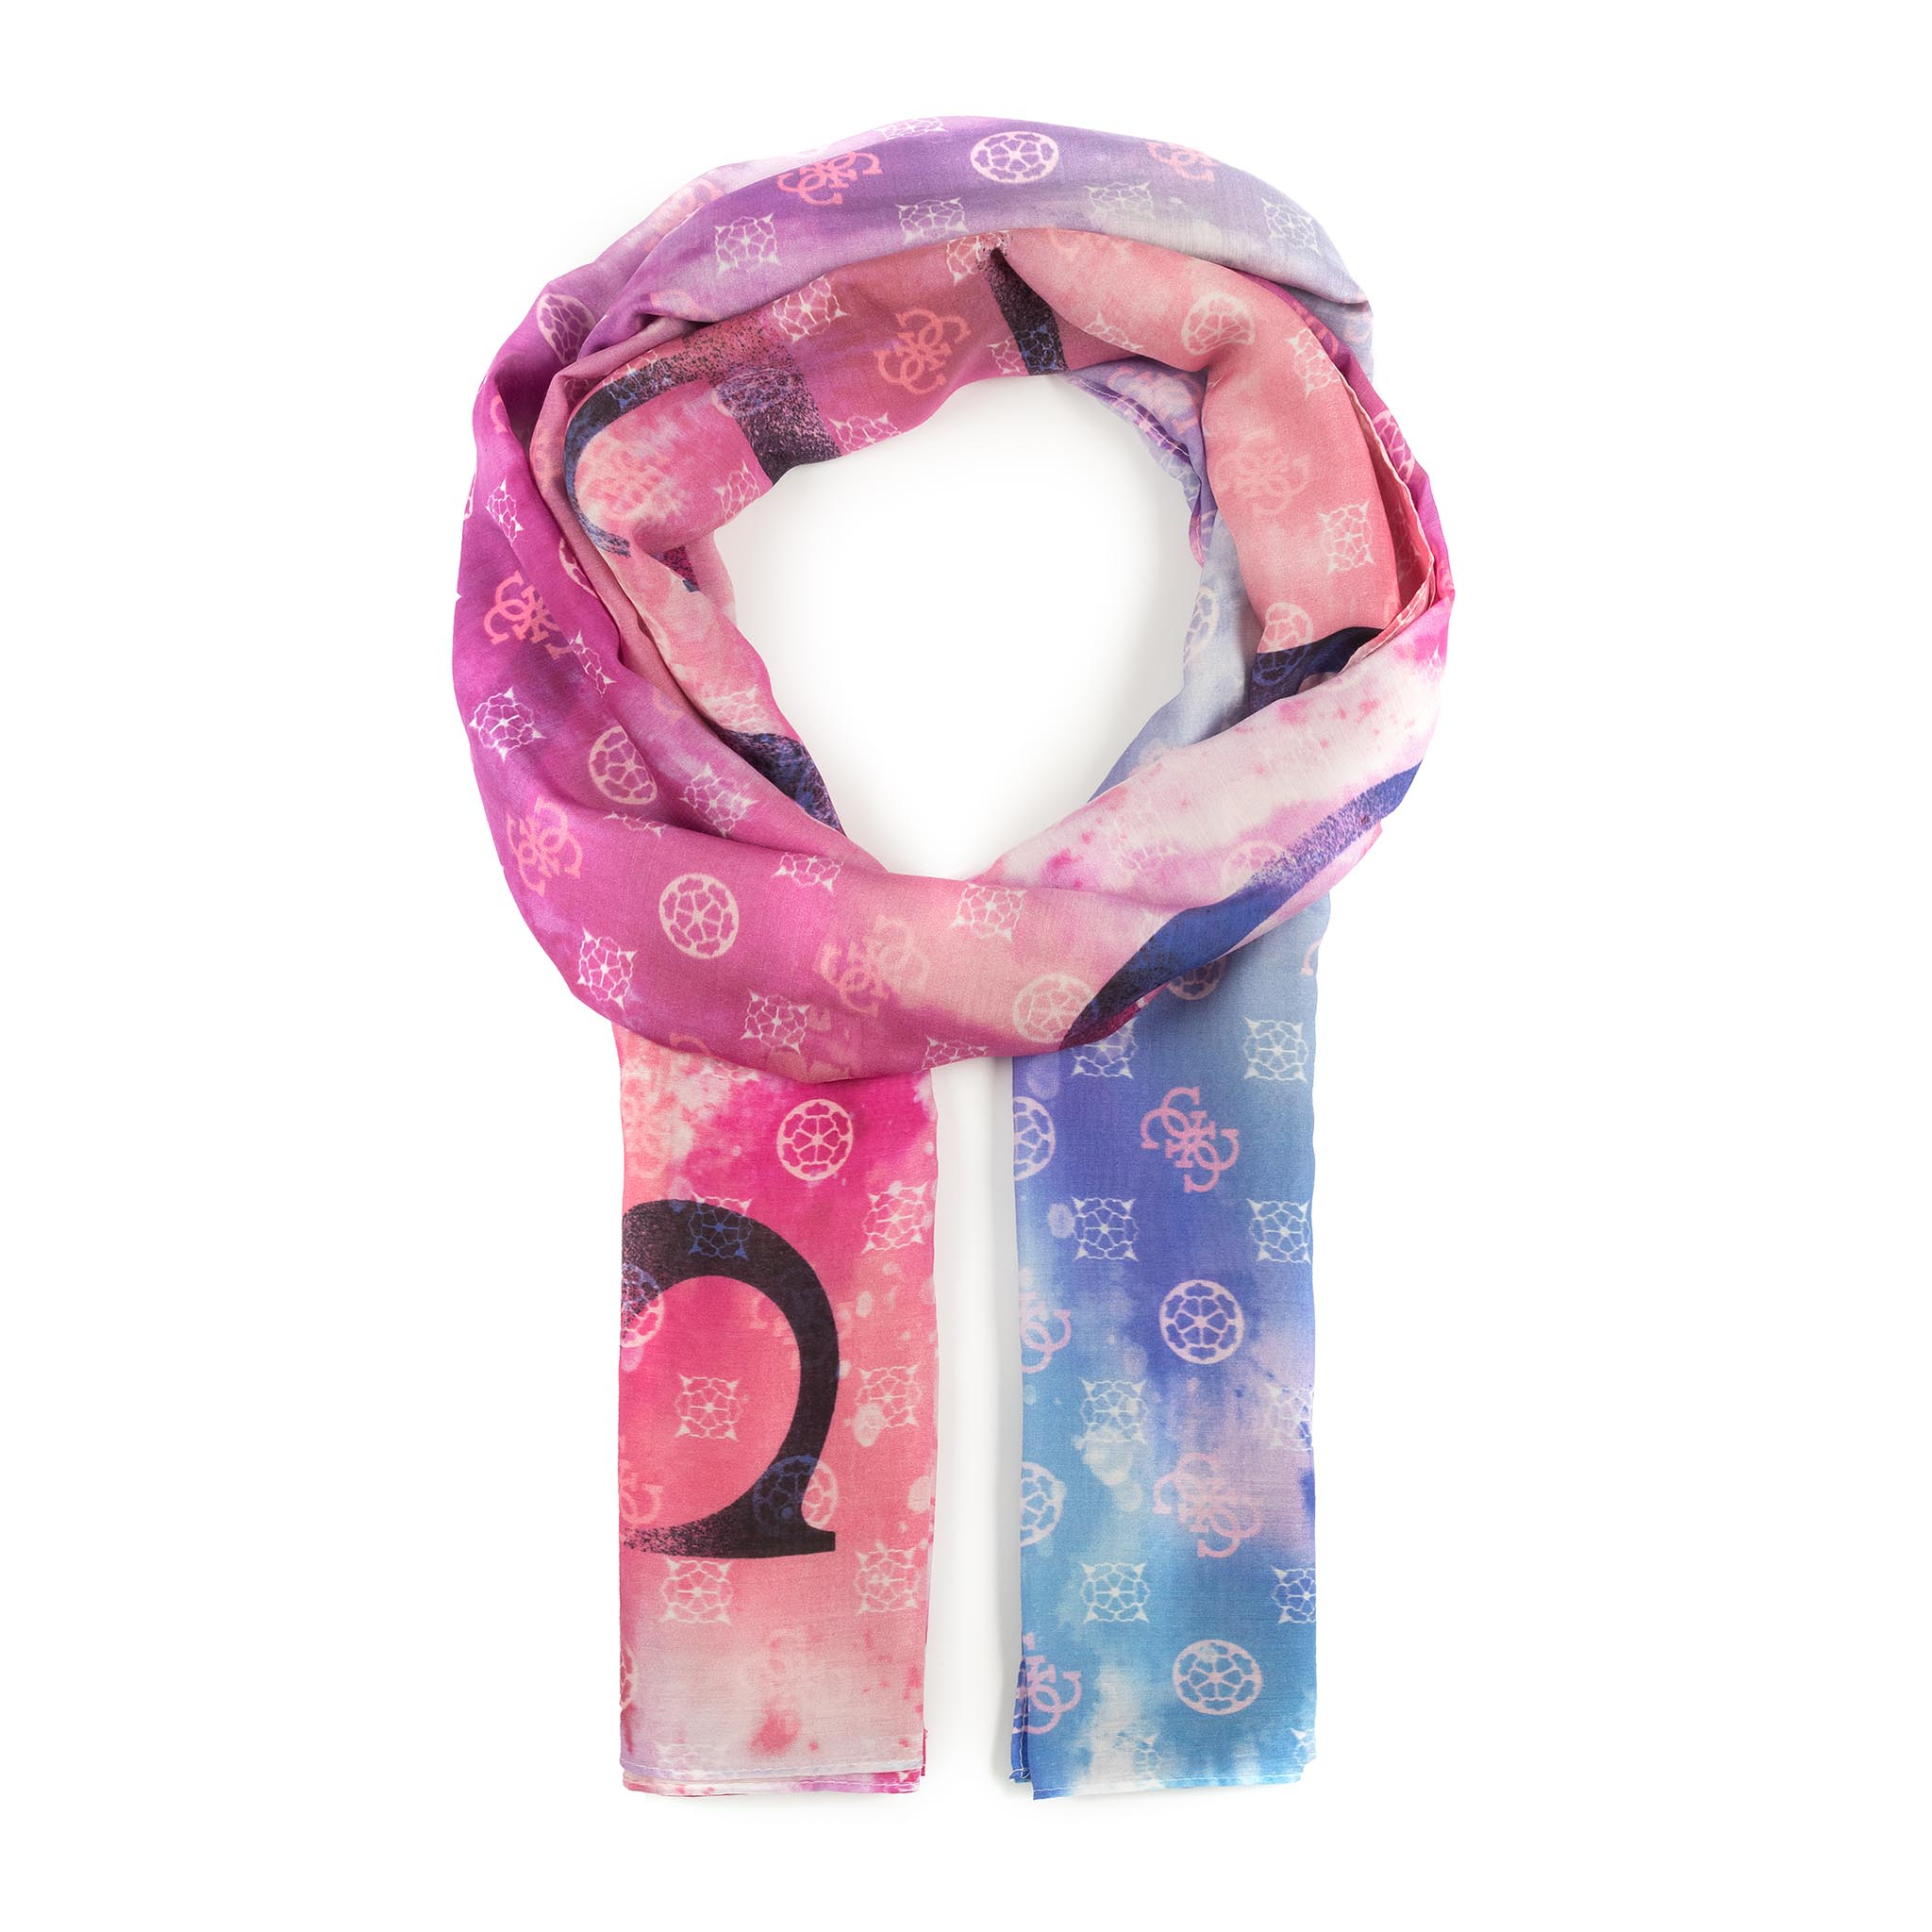 Fular Guess - Not Coordinated Scarves Aw8418 Cot03 Pin imagine epantofi.ro 2021